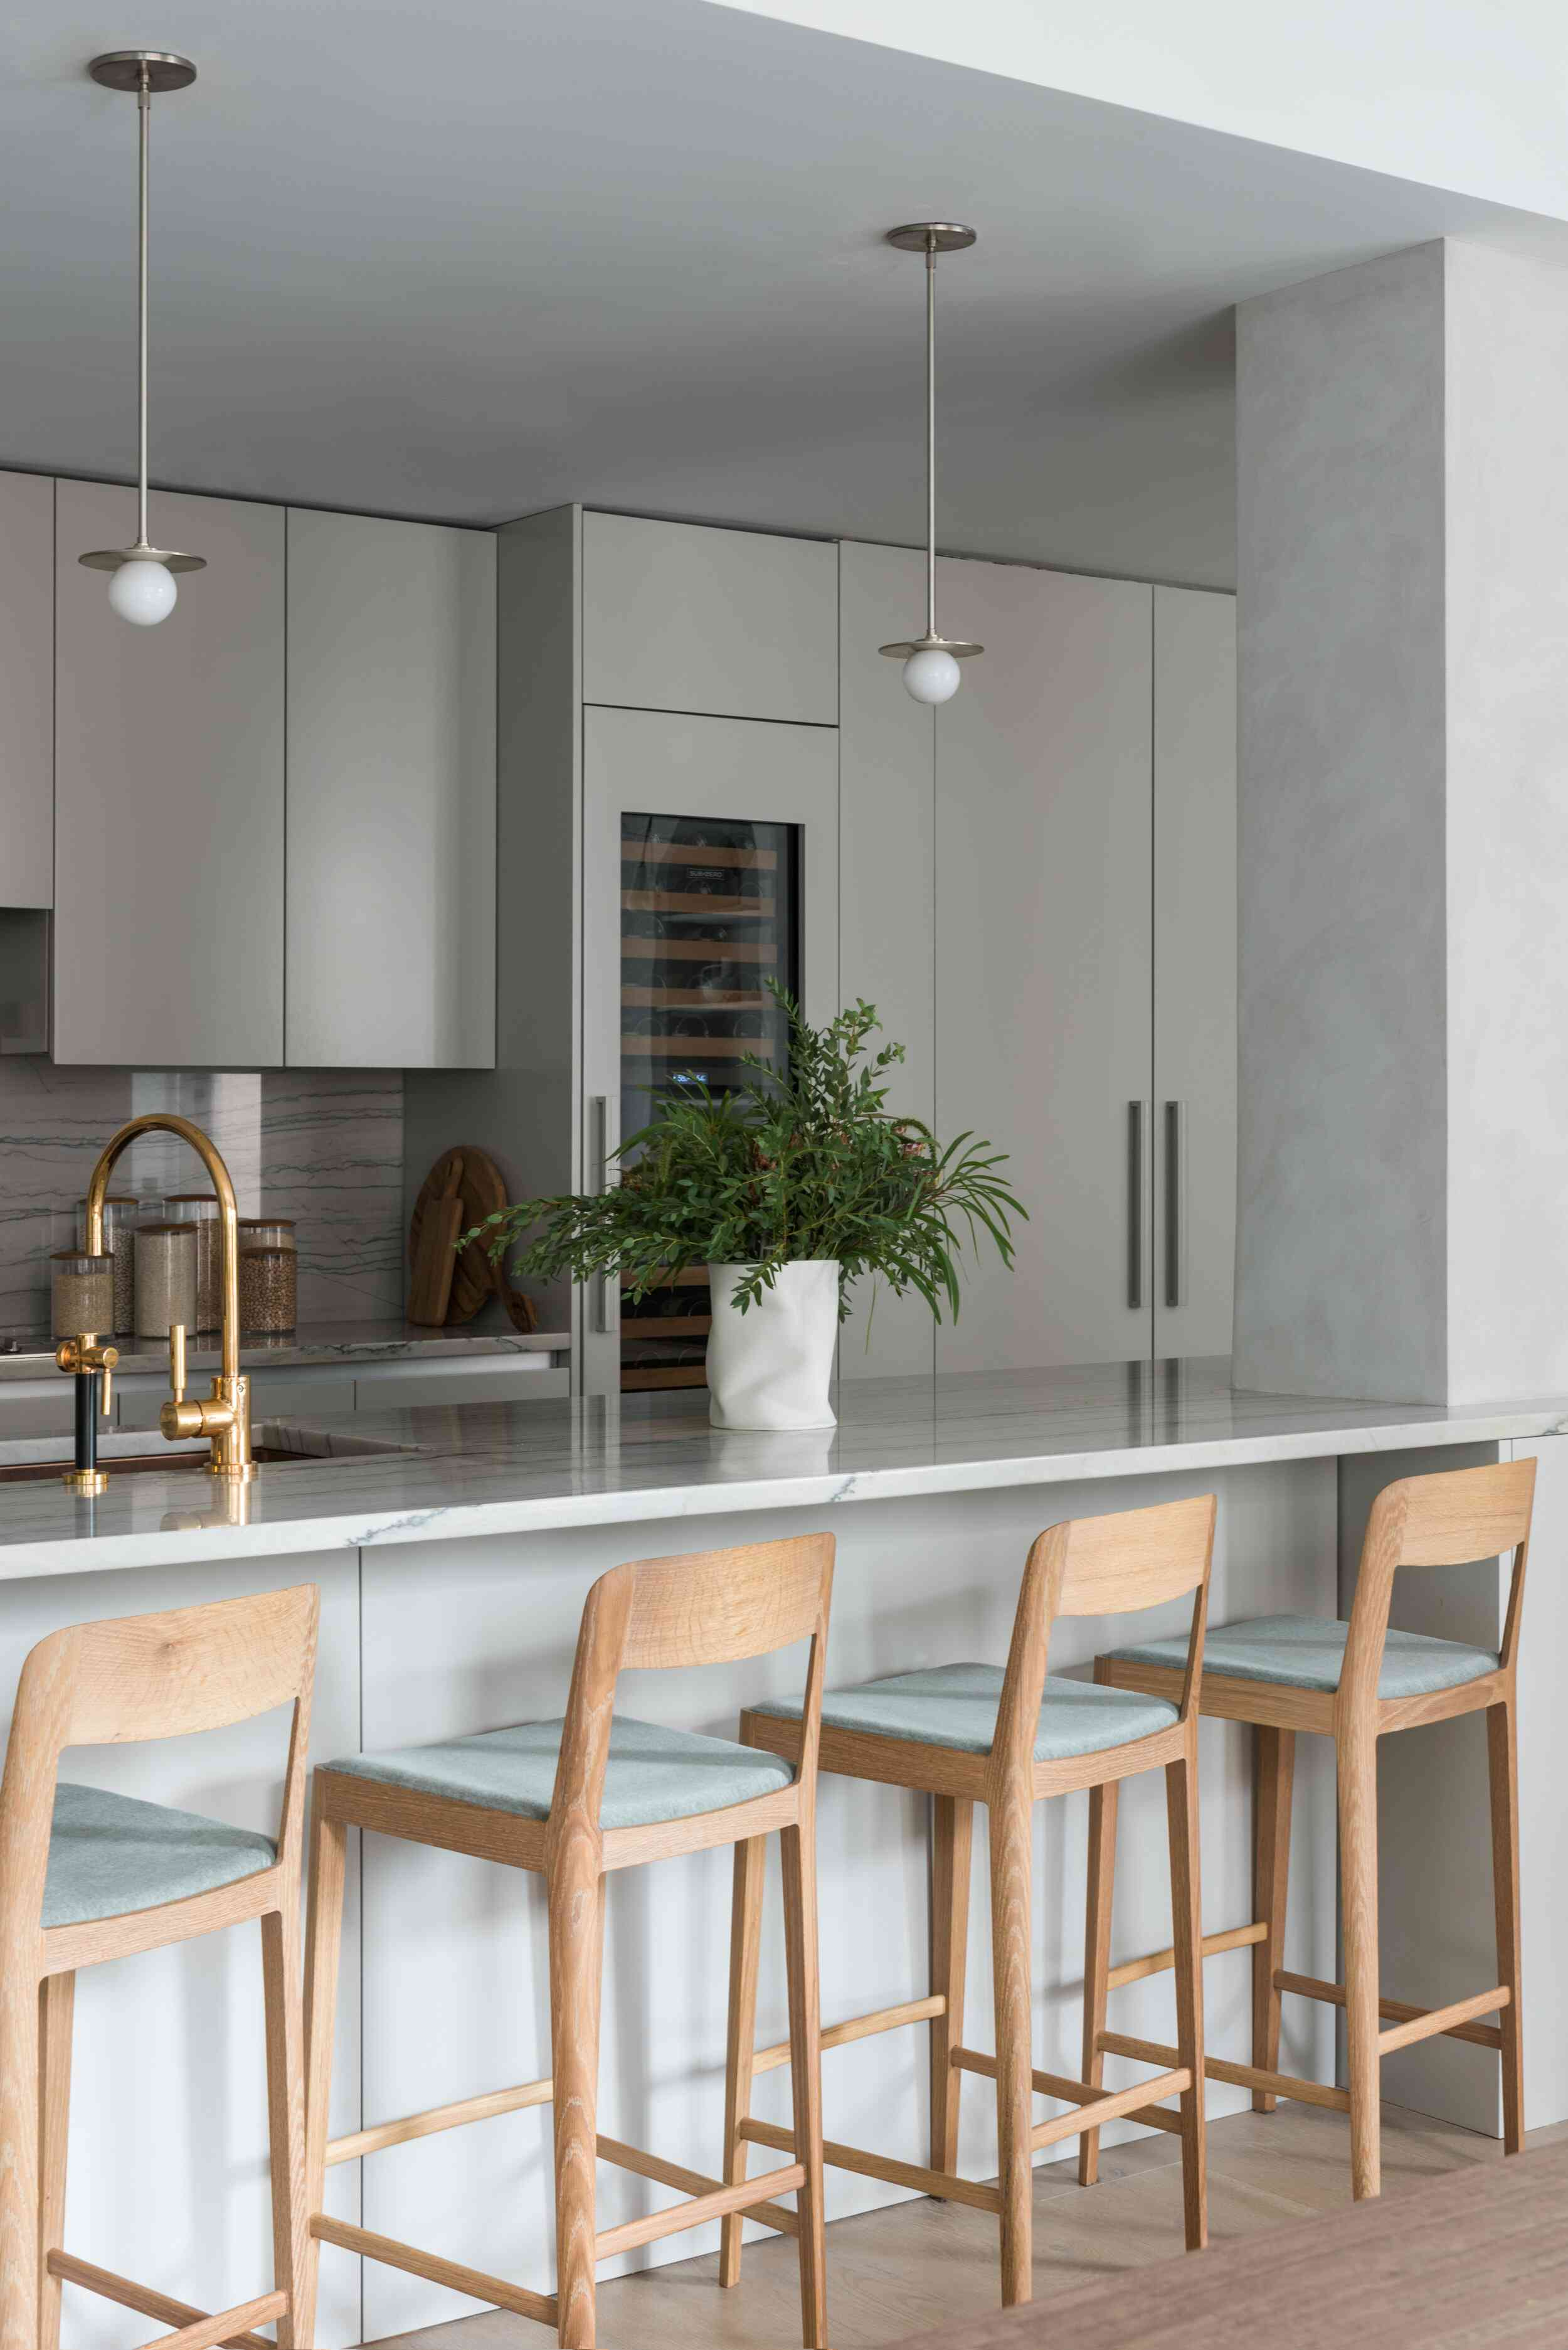 A sleek kitchen with light gray cabinets